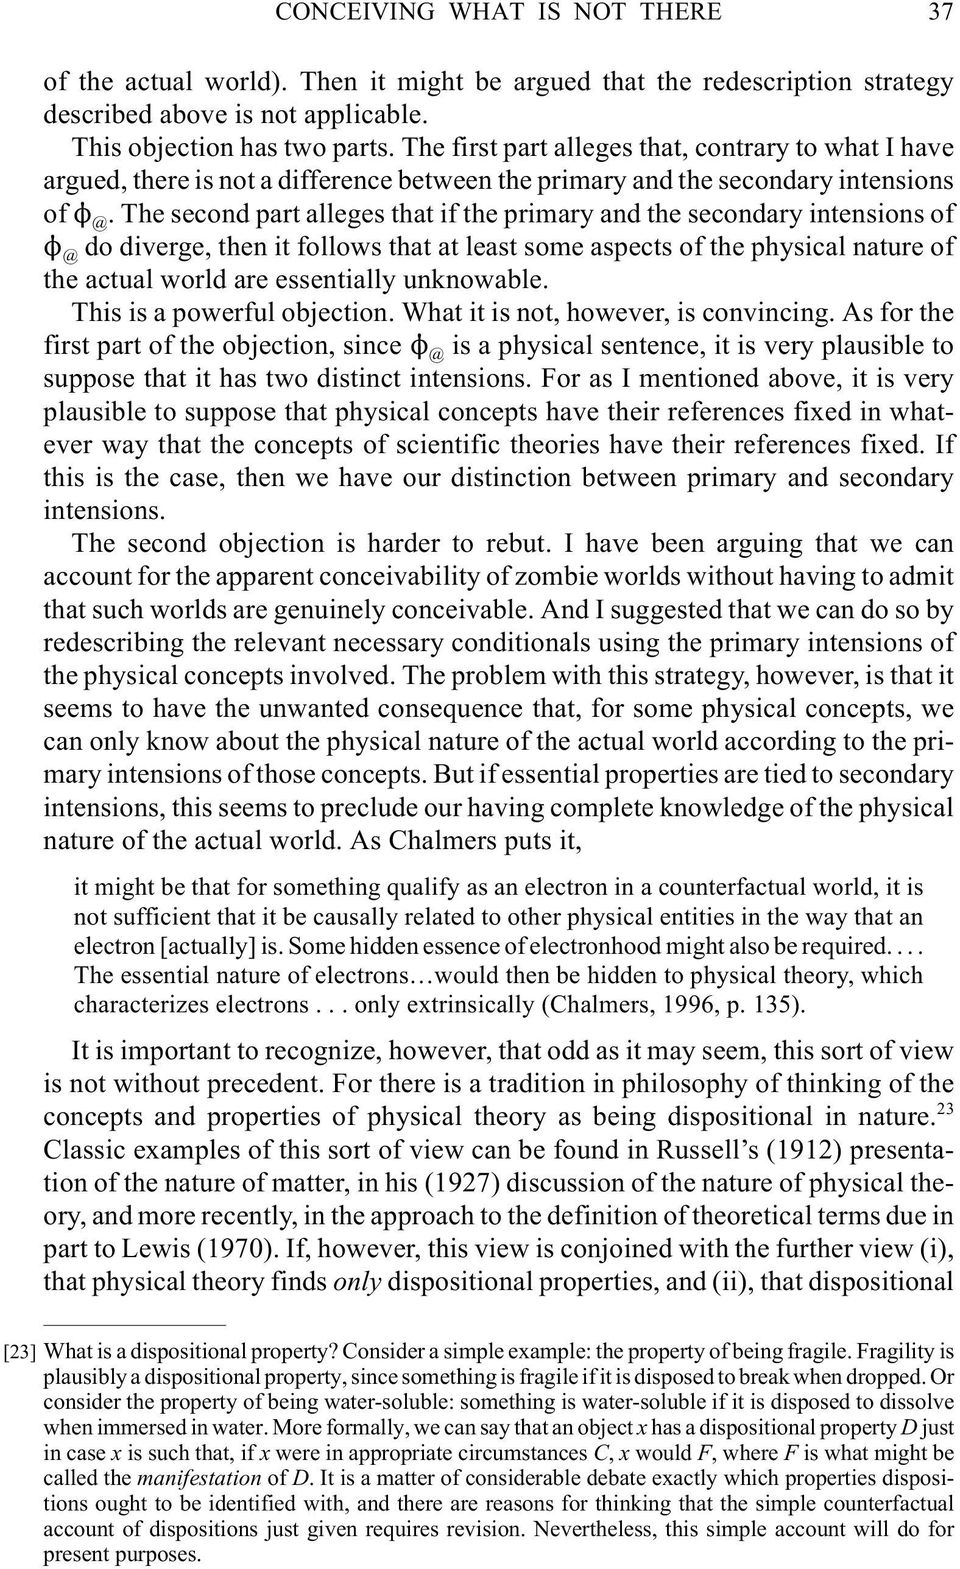 The second part alleges that if the primary and the secondary intensions of @ do diverge, then it follows that at least some aspects of the physical nature of the actual world are essentially